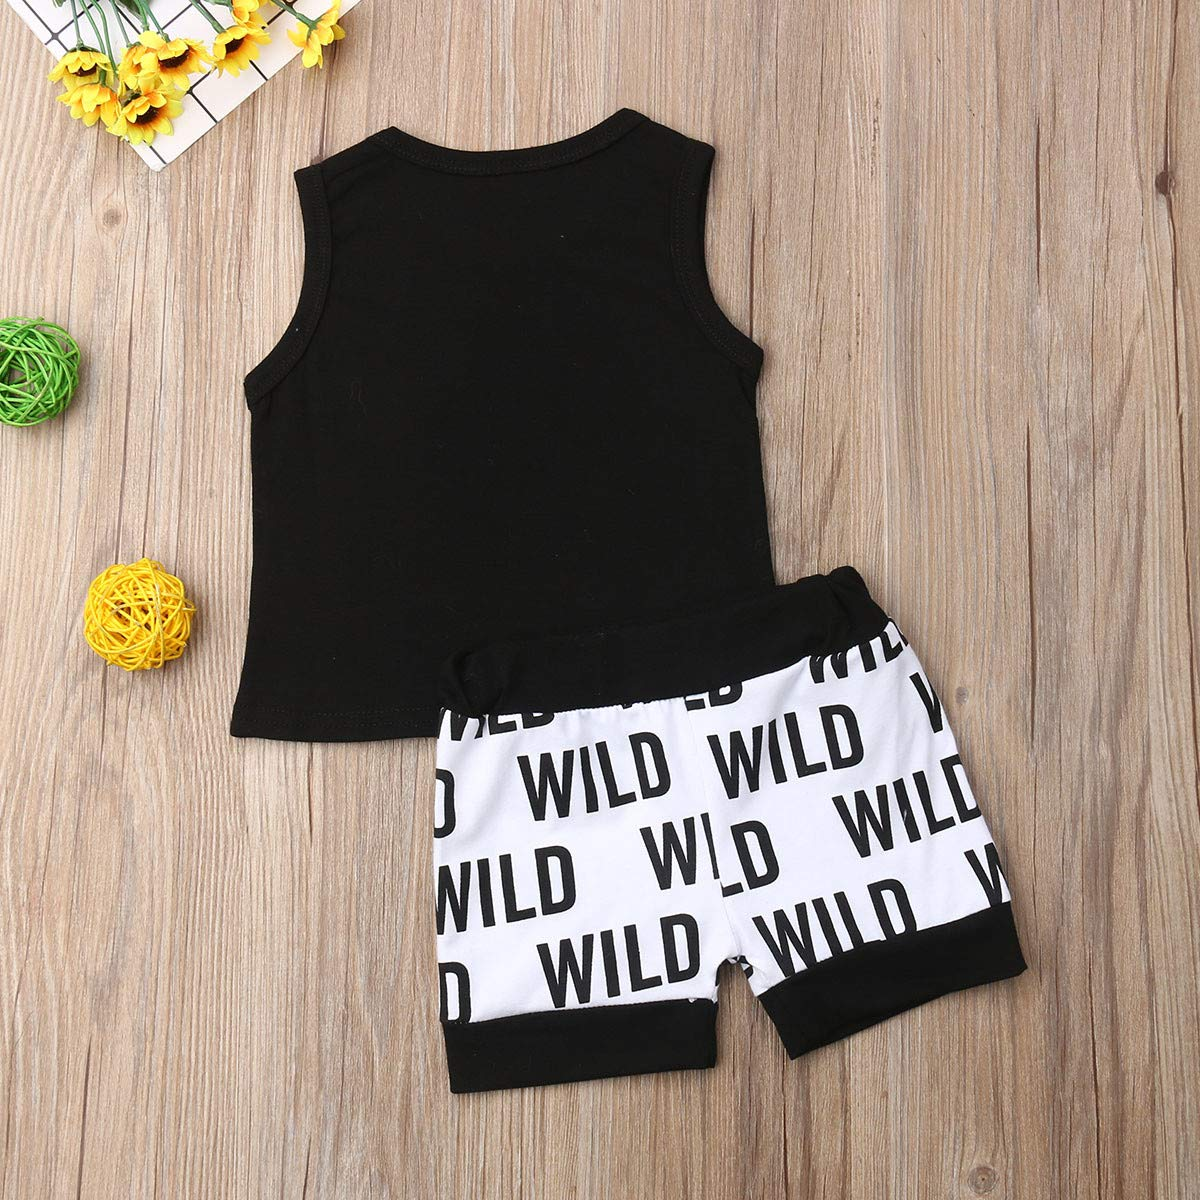 Summer Newborn Infant Boy Sleeveless Letter Printing Cotton Vest Tops Pants Pant 2PCS Outfits Children Clothing Set 0-24M Complete Moon Gift